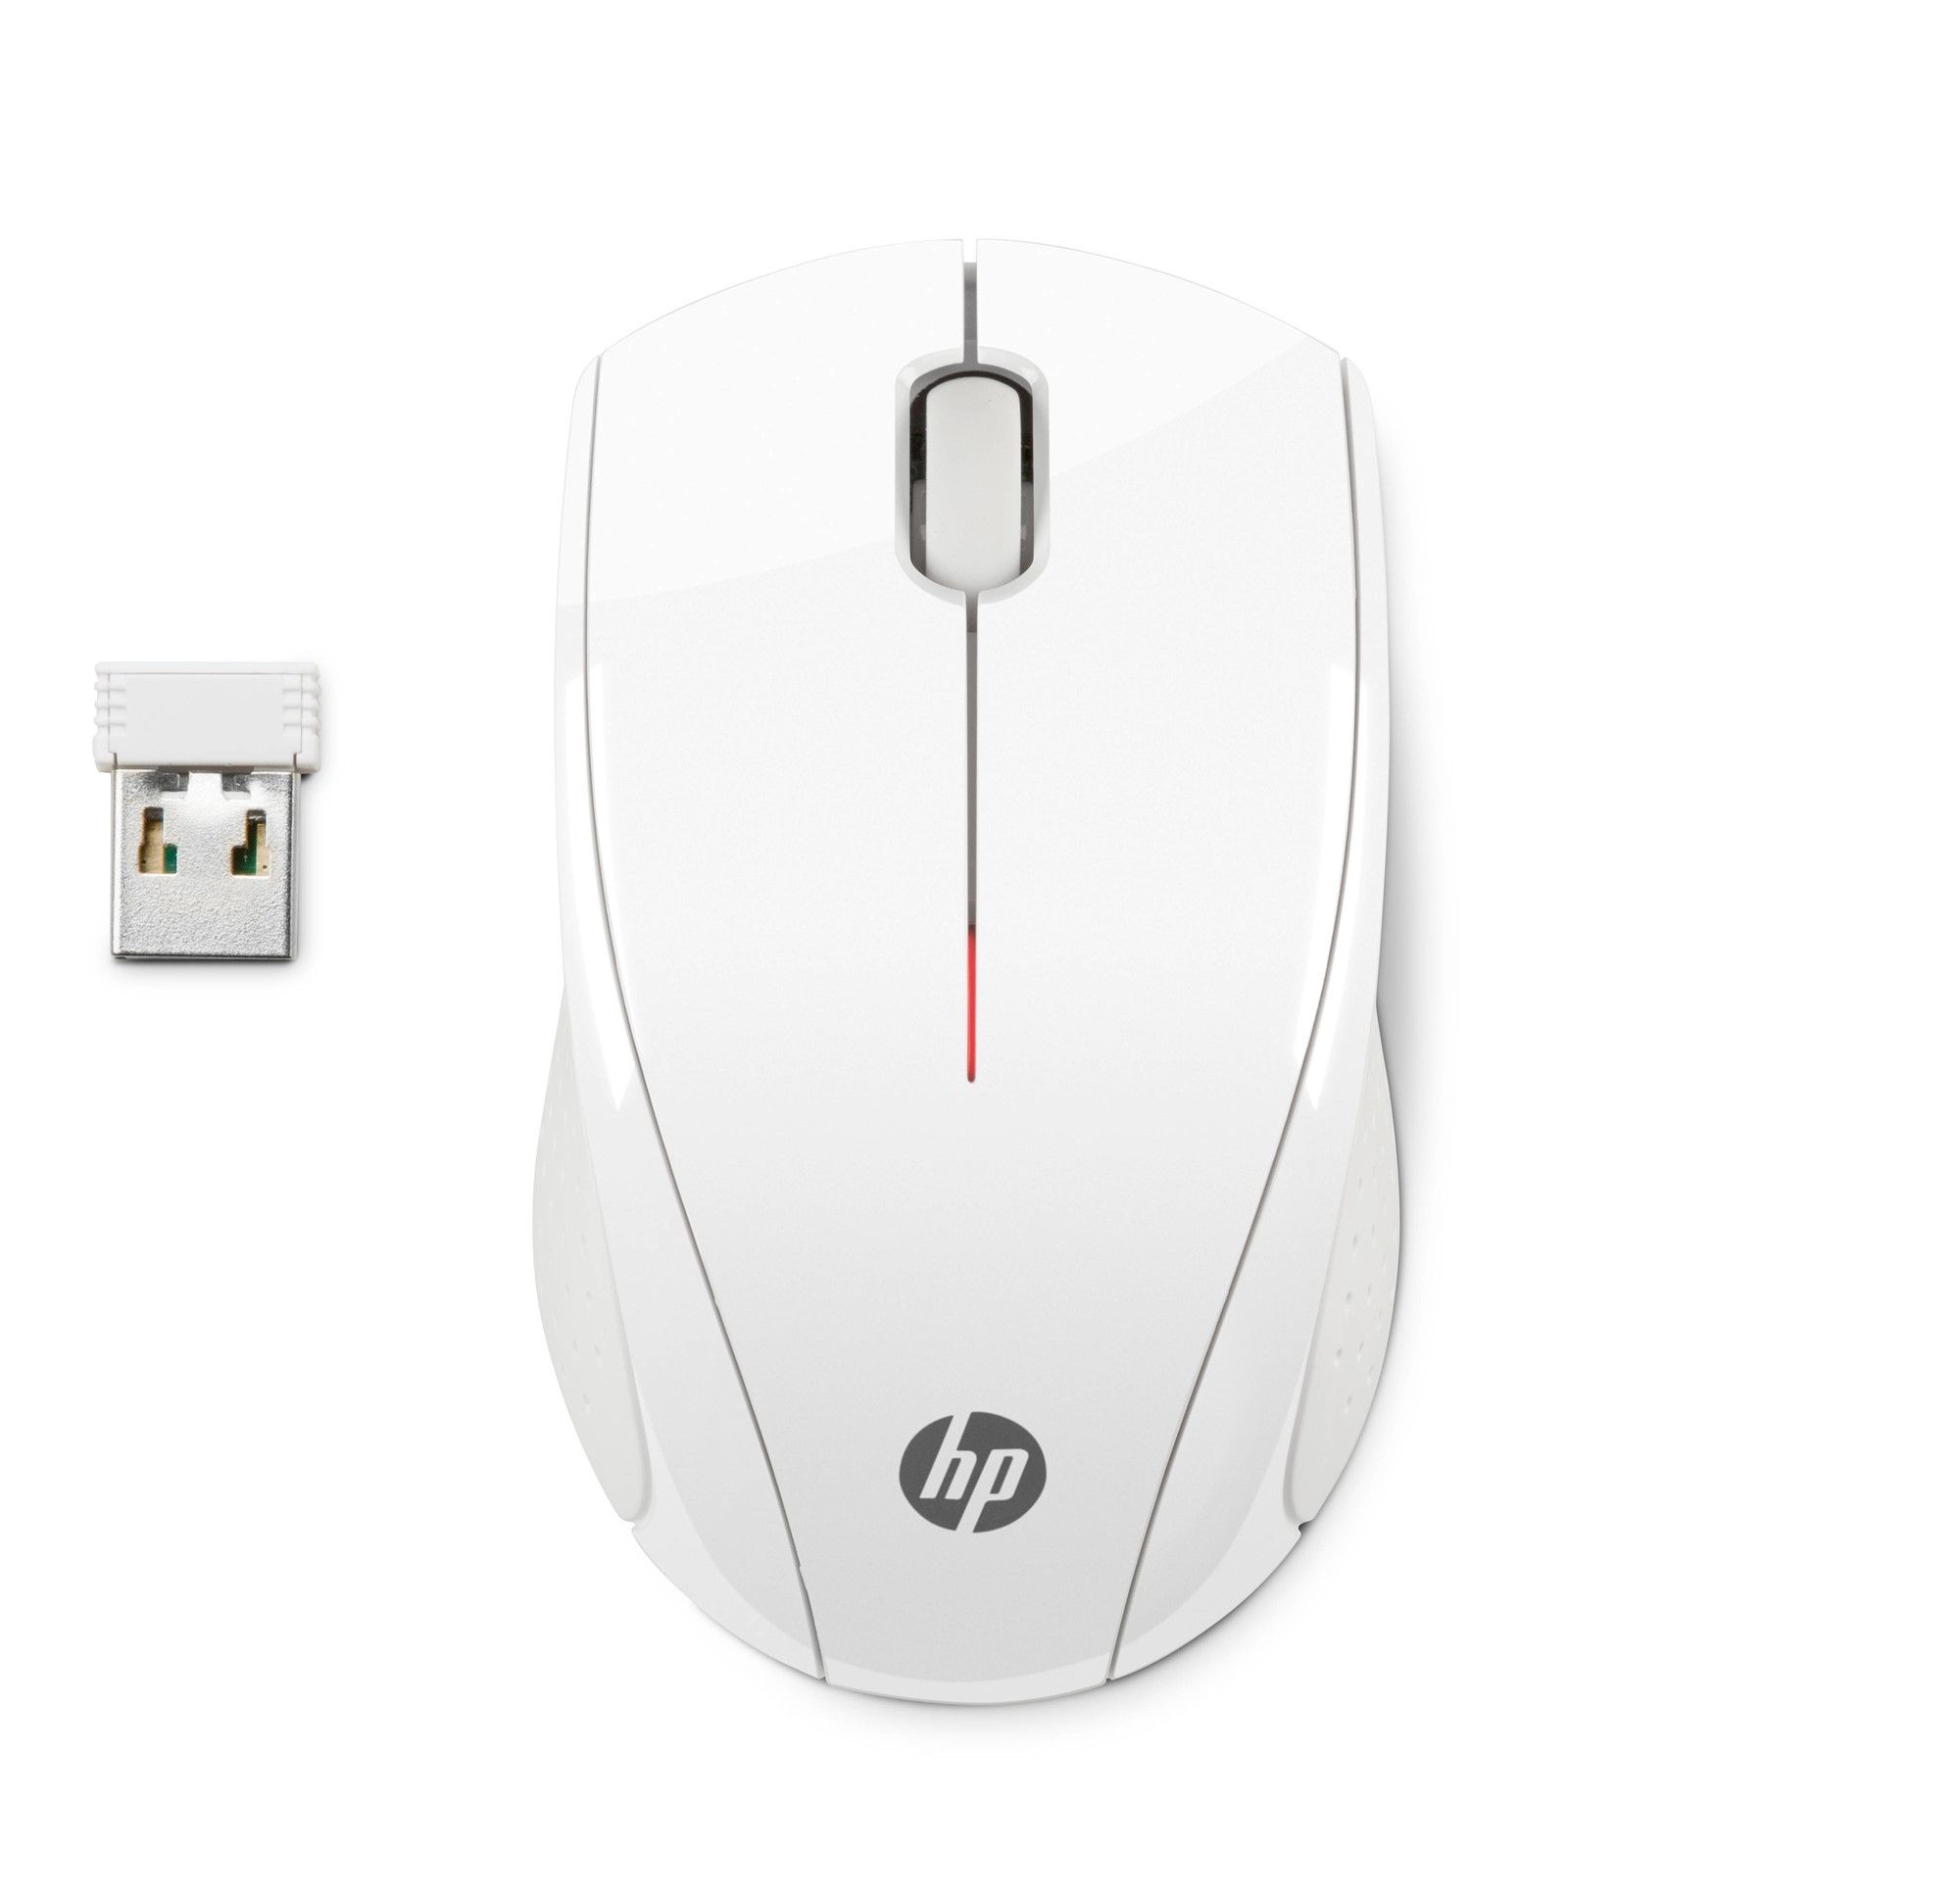 HP N4G64AA X3000 BLIZZARD WHITE WIRELESS MOUSE